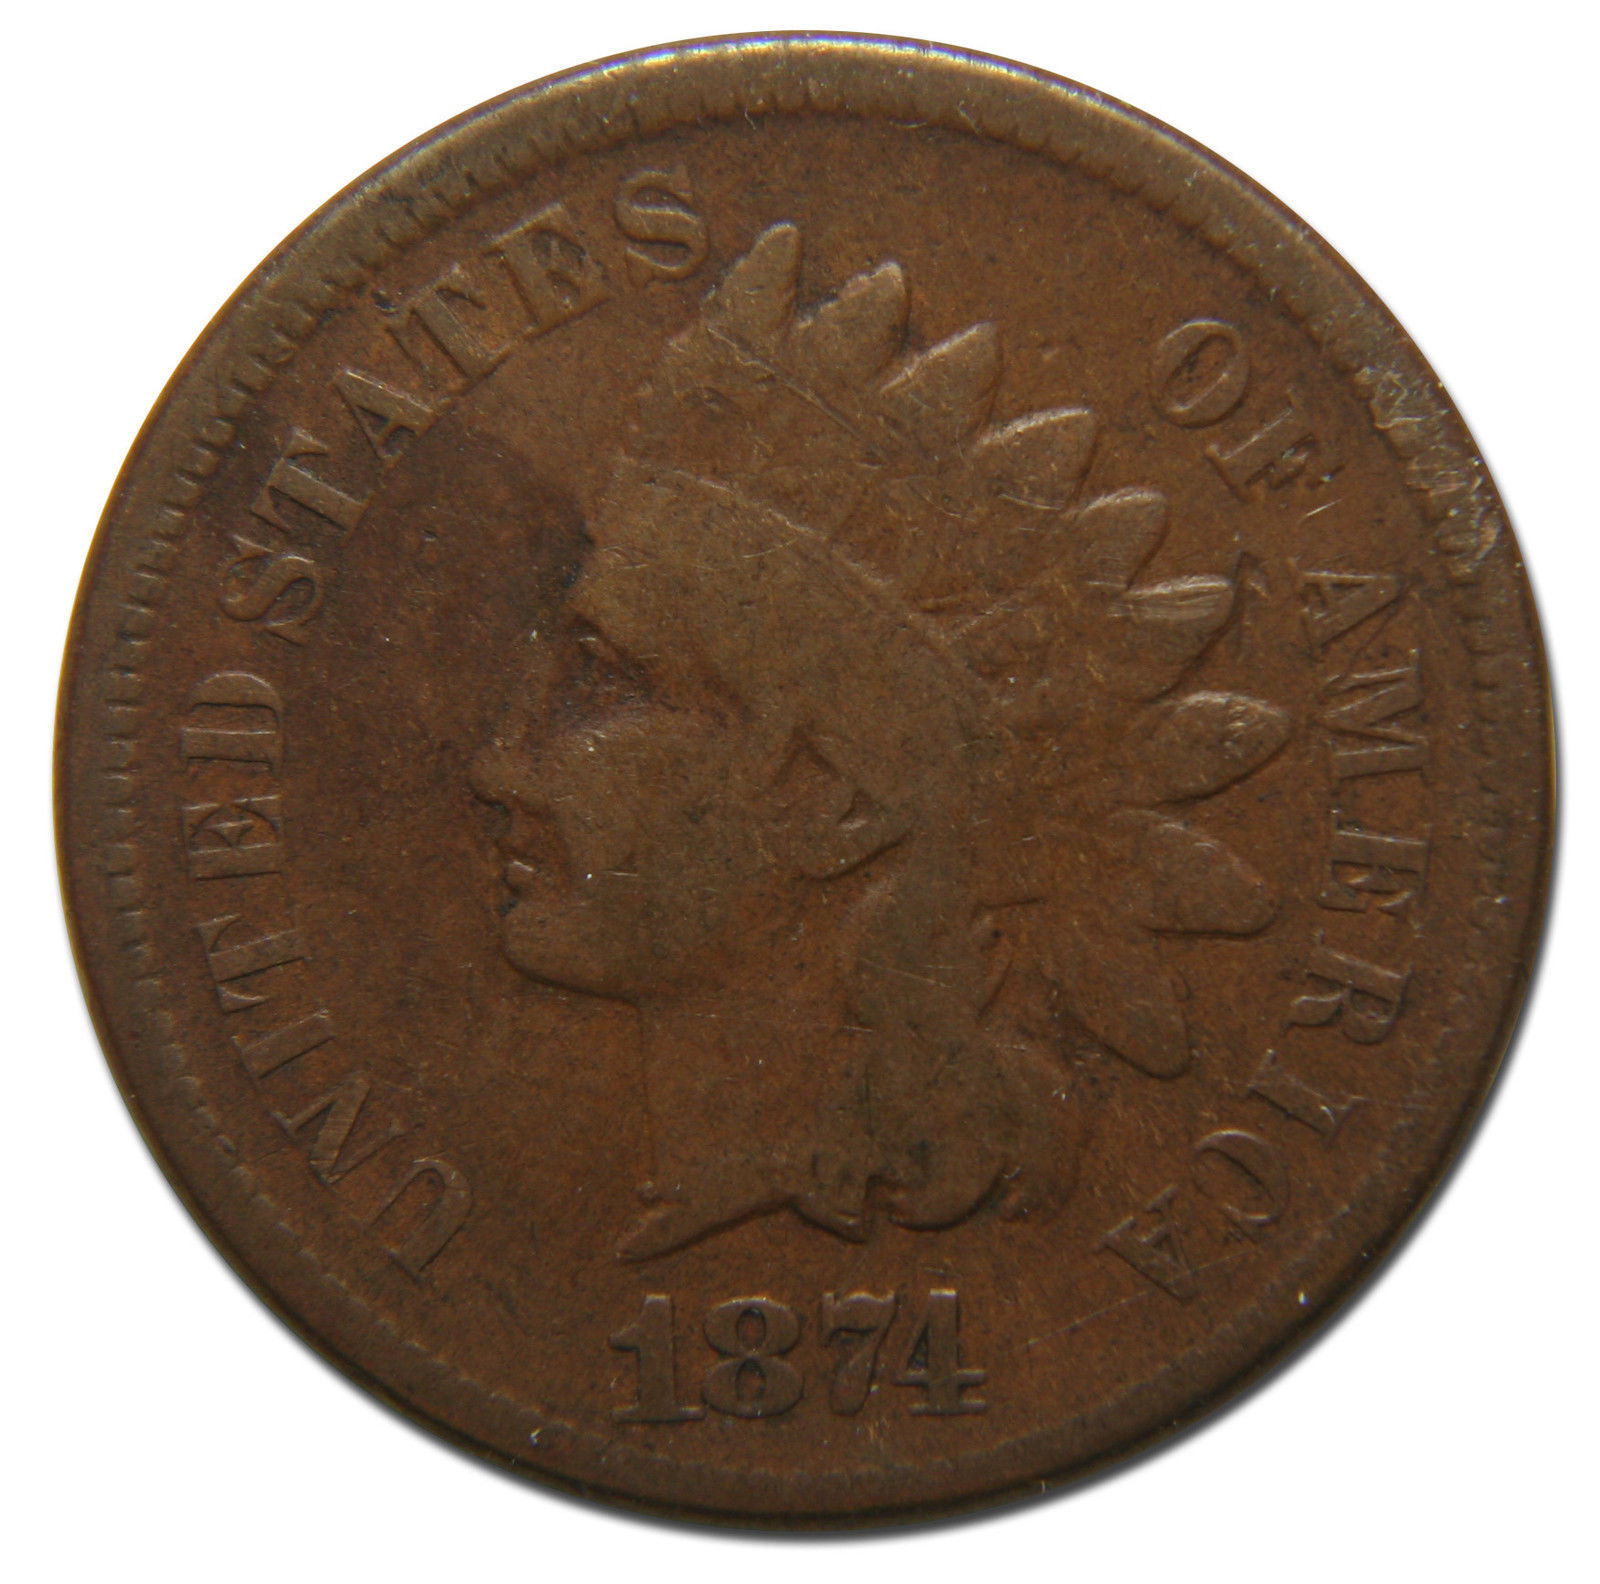 1874 Indian Head Penny / Cent Coin Lot# MZ 3591